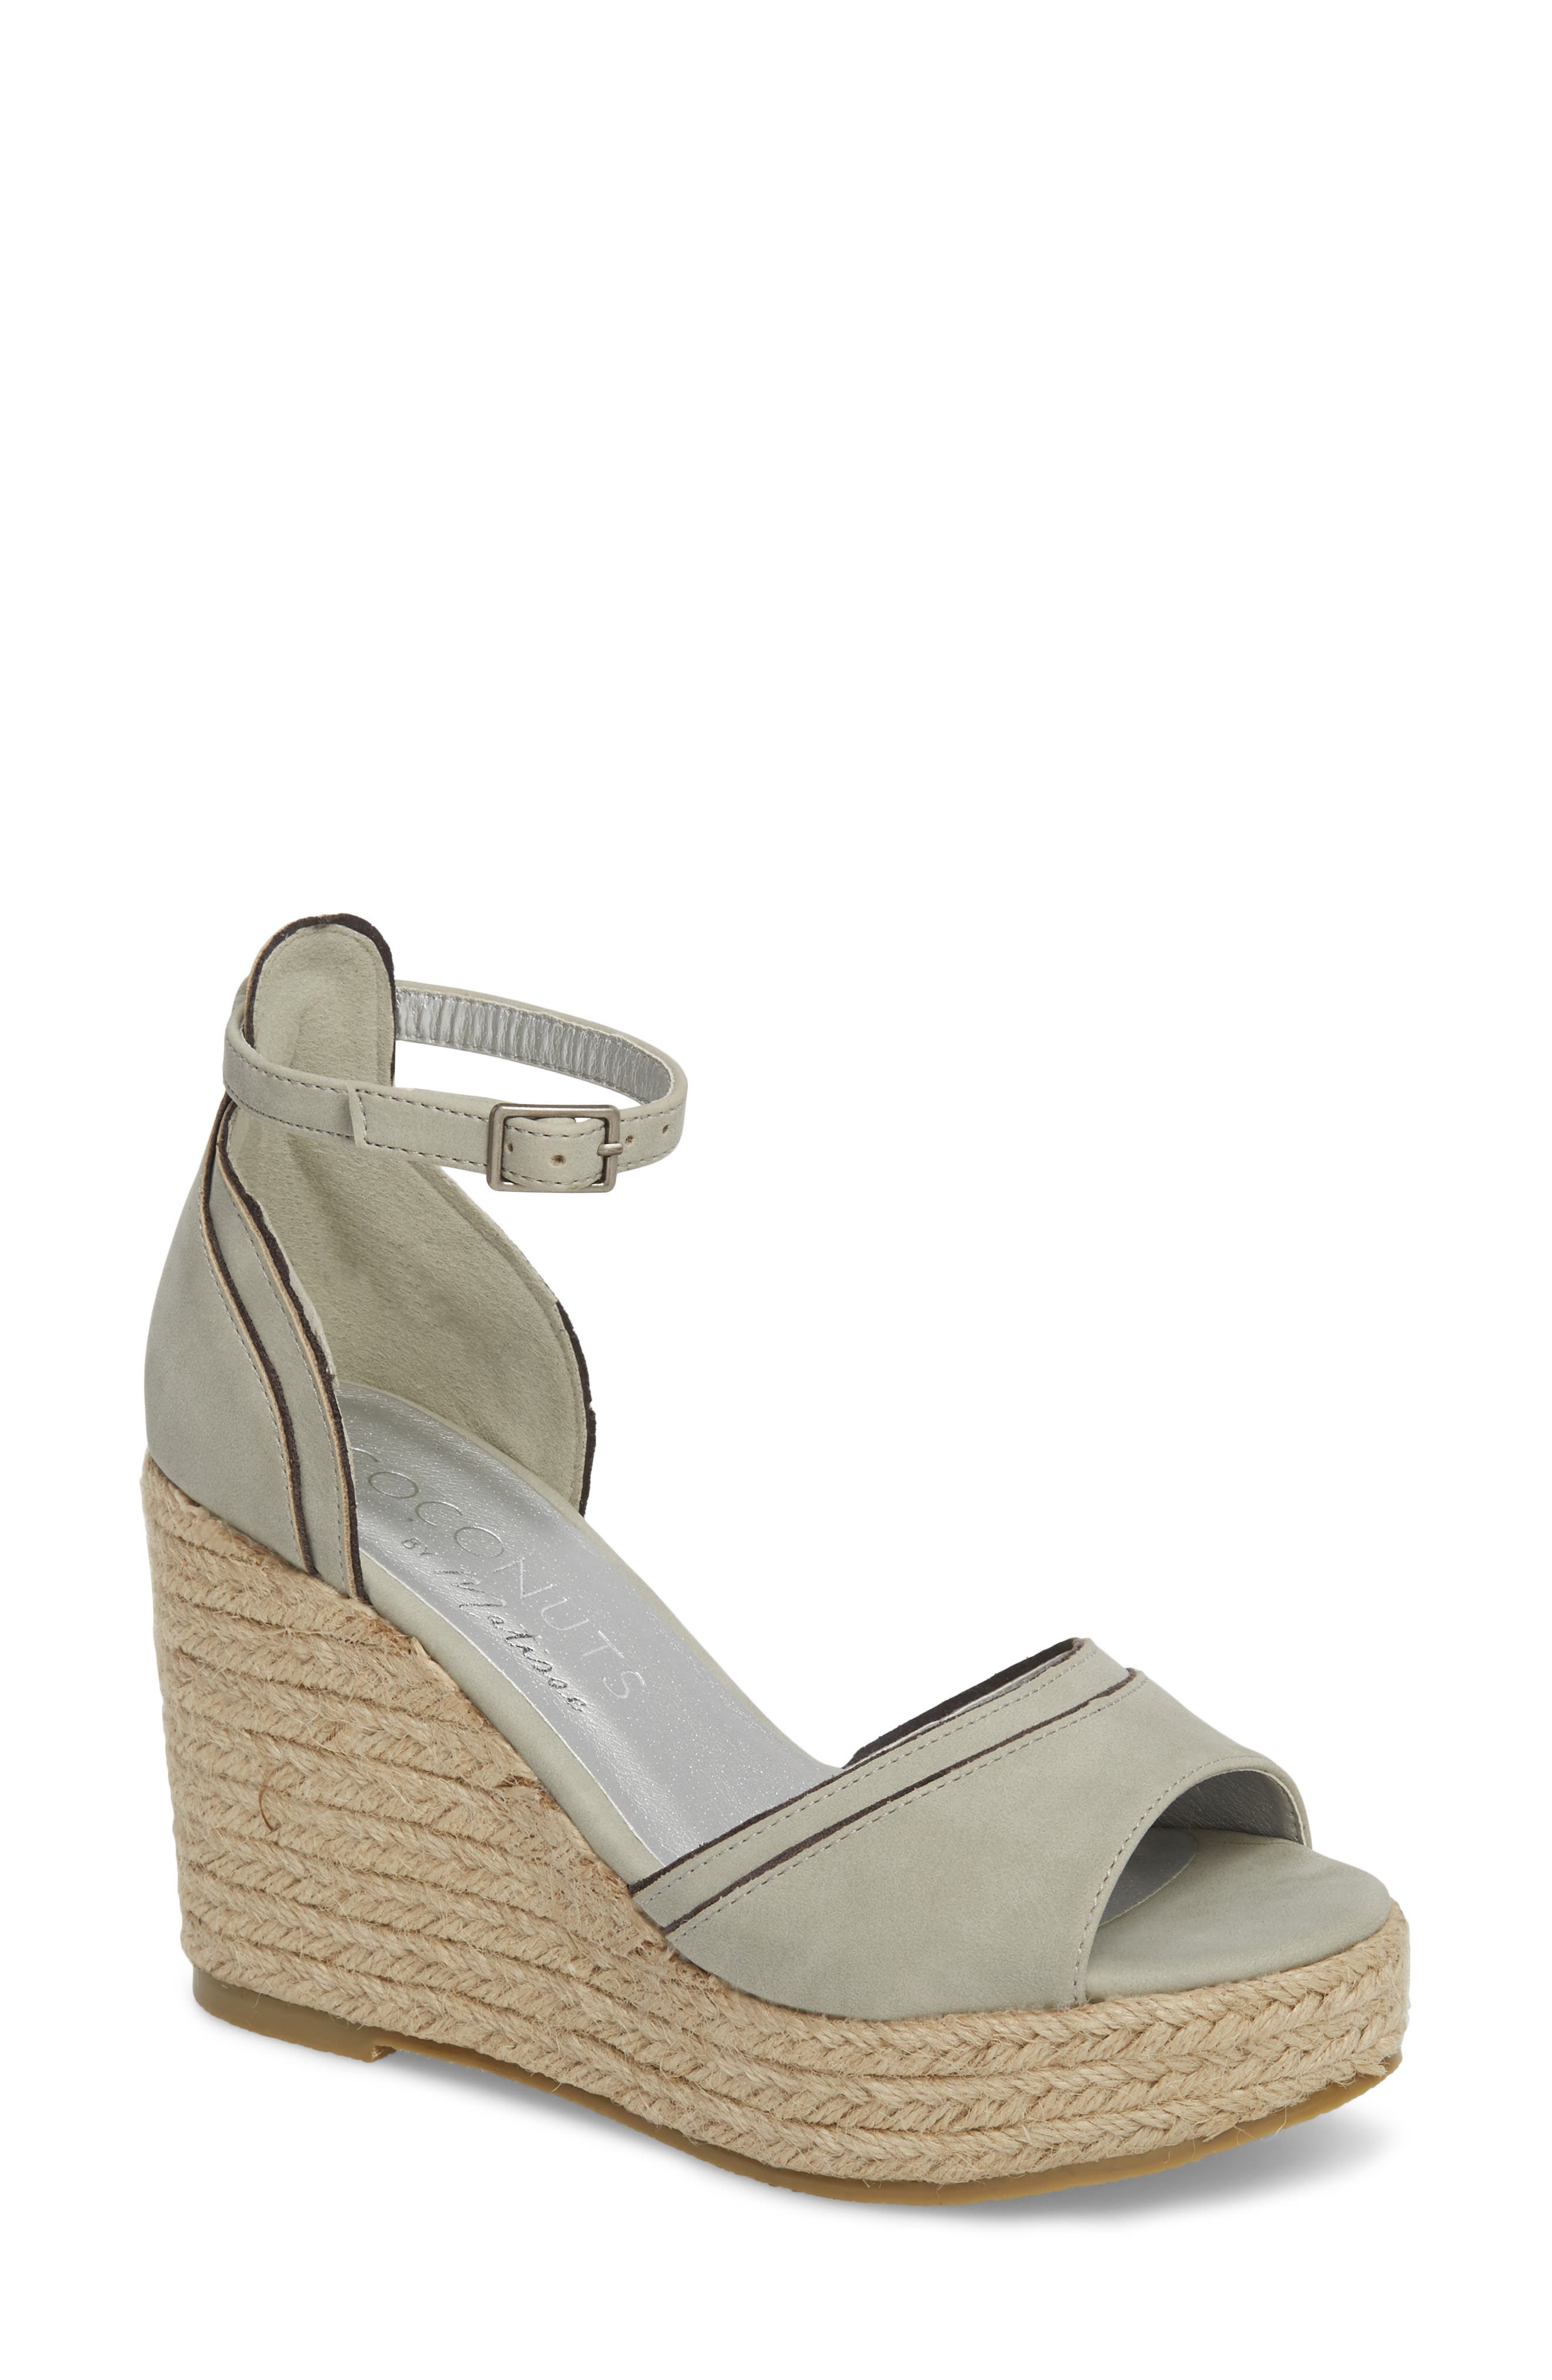 Main Image - Coconuts by Matisse Bon Voyage Espadrille Wedge Sandal (Women)